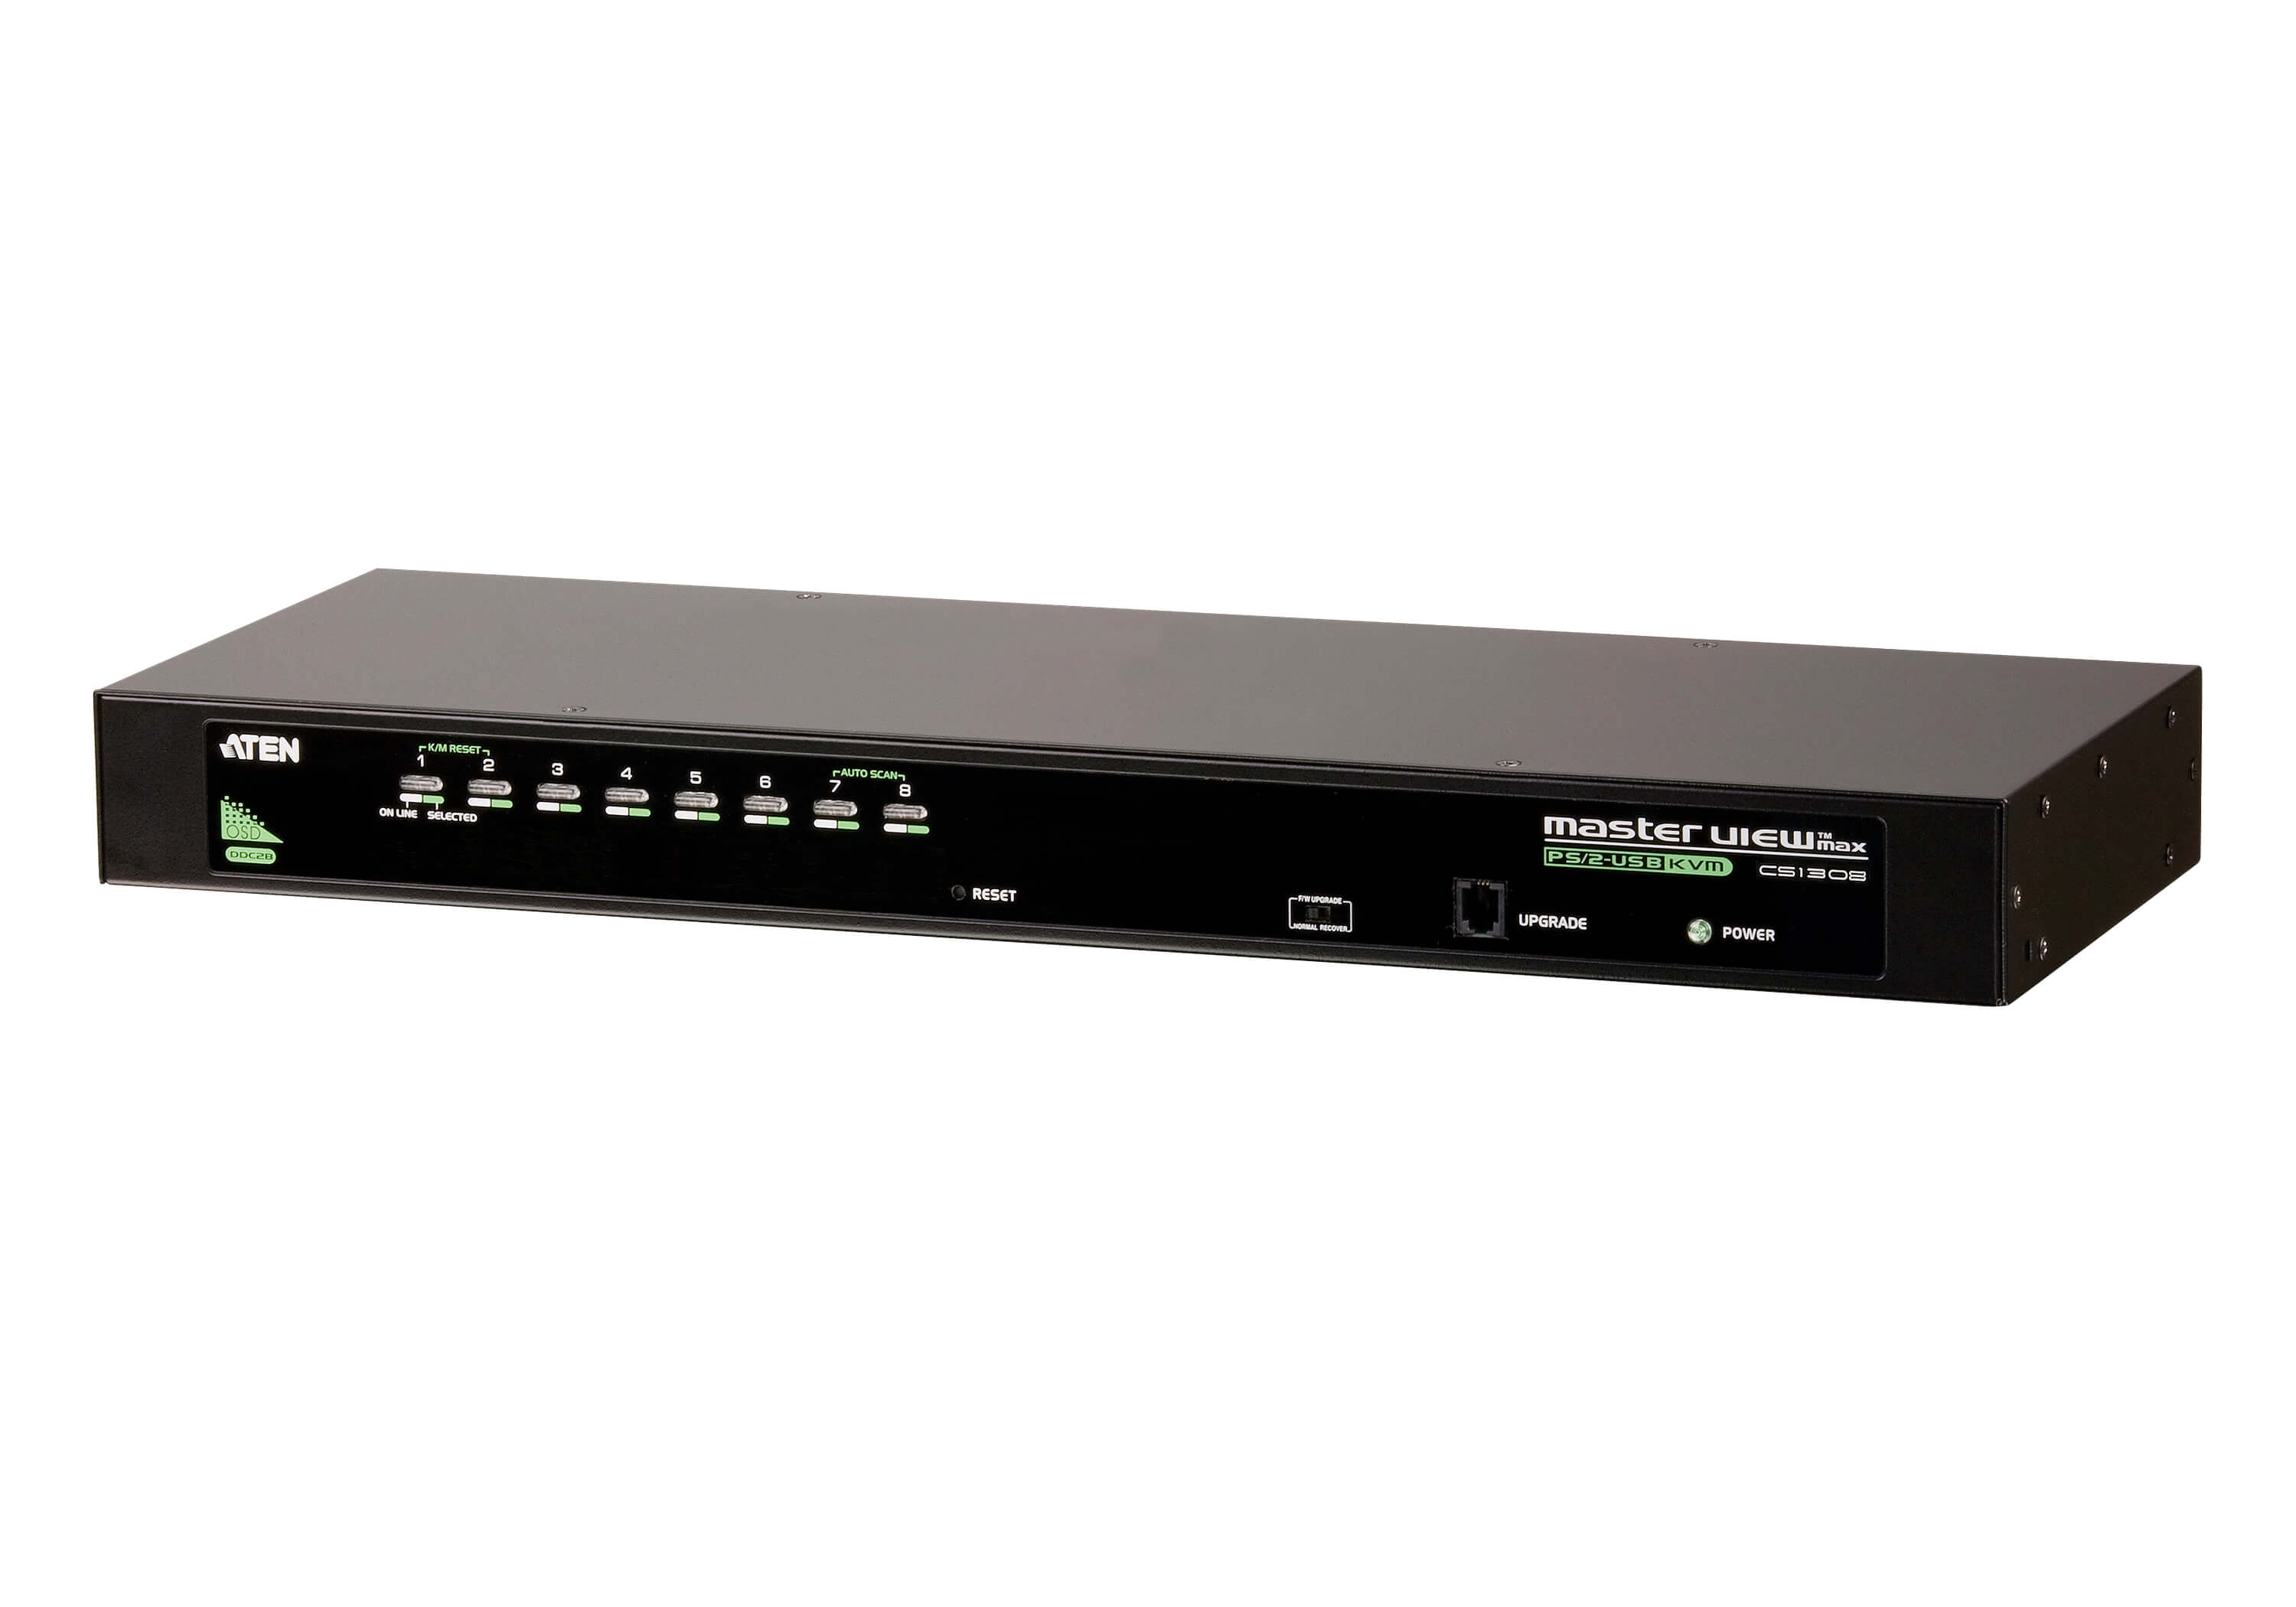 8-Port-PS/2-USB-VGA-KVM-Switch-1